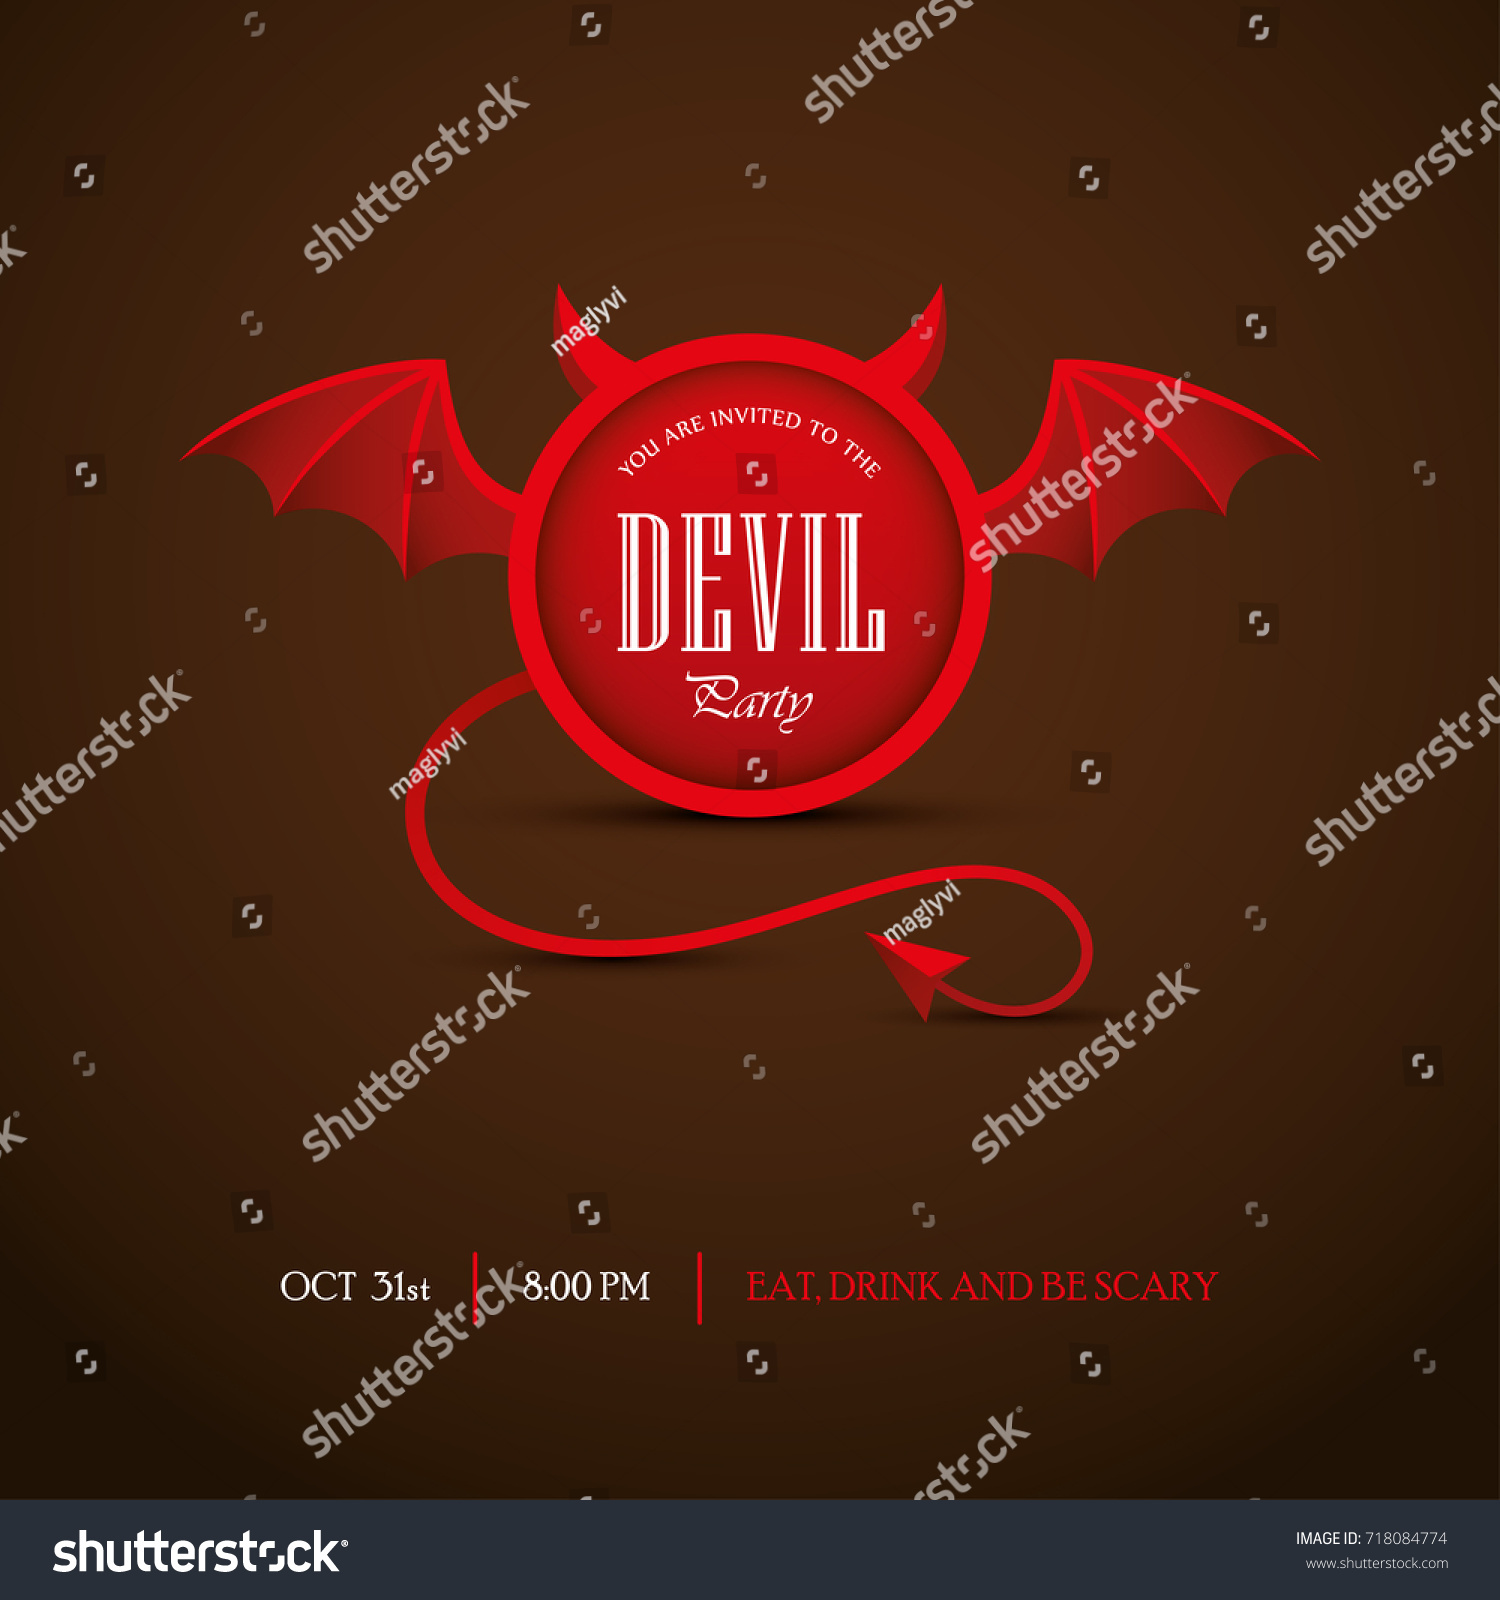 Creative Halloween Party Invitation Banner Design Vector – Creative Halloween Party Invitations